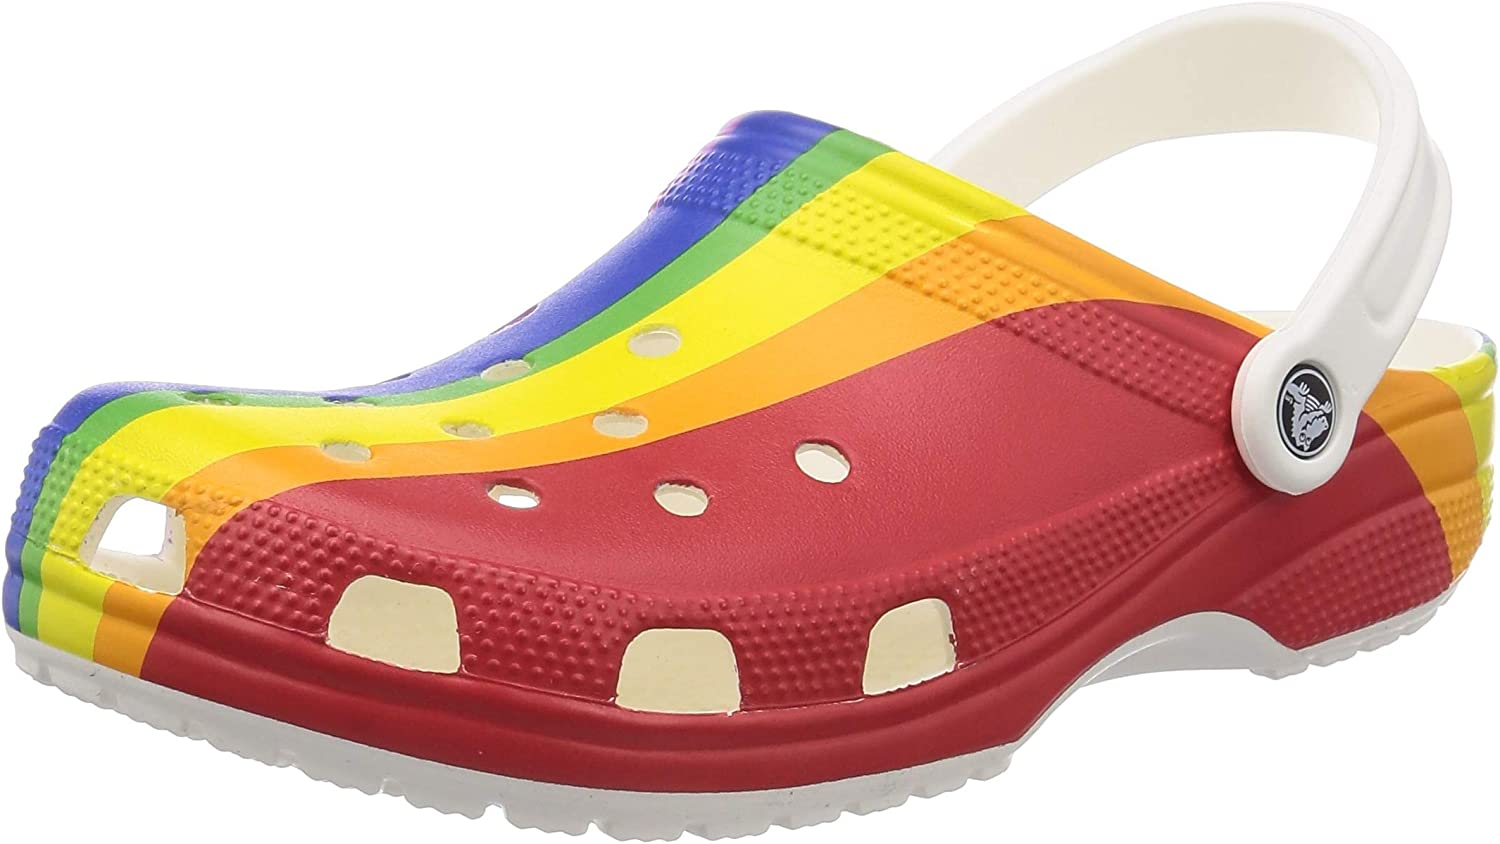 Crocs Unisex-Adult Classic Graphic Clog   Water Slip on Shoes